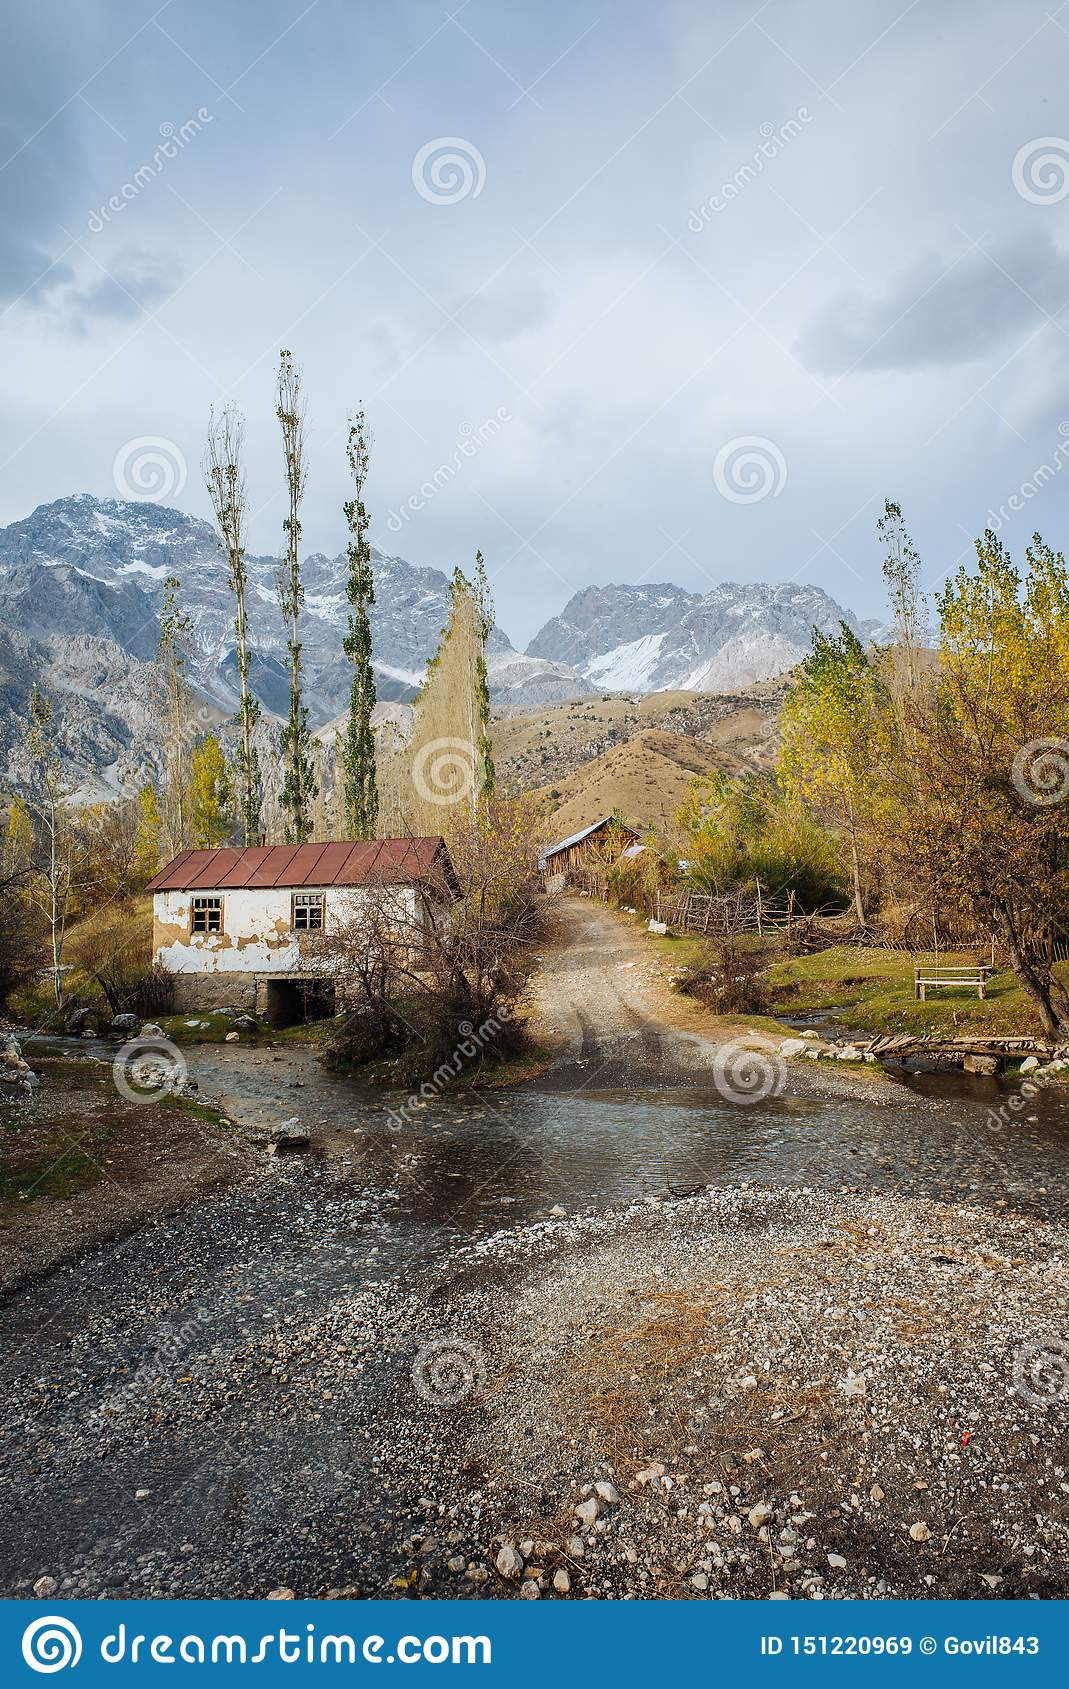 ARSLANBOB, KYRGYZSTAN: View of Arslanbob village in southern Kyrgyzstan, with mountains in the background during autumn.